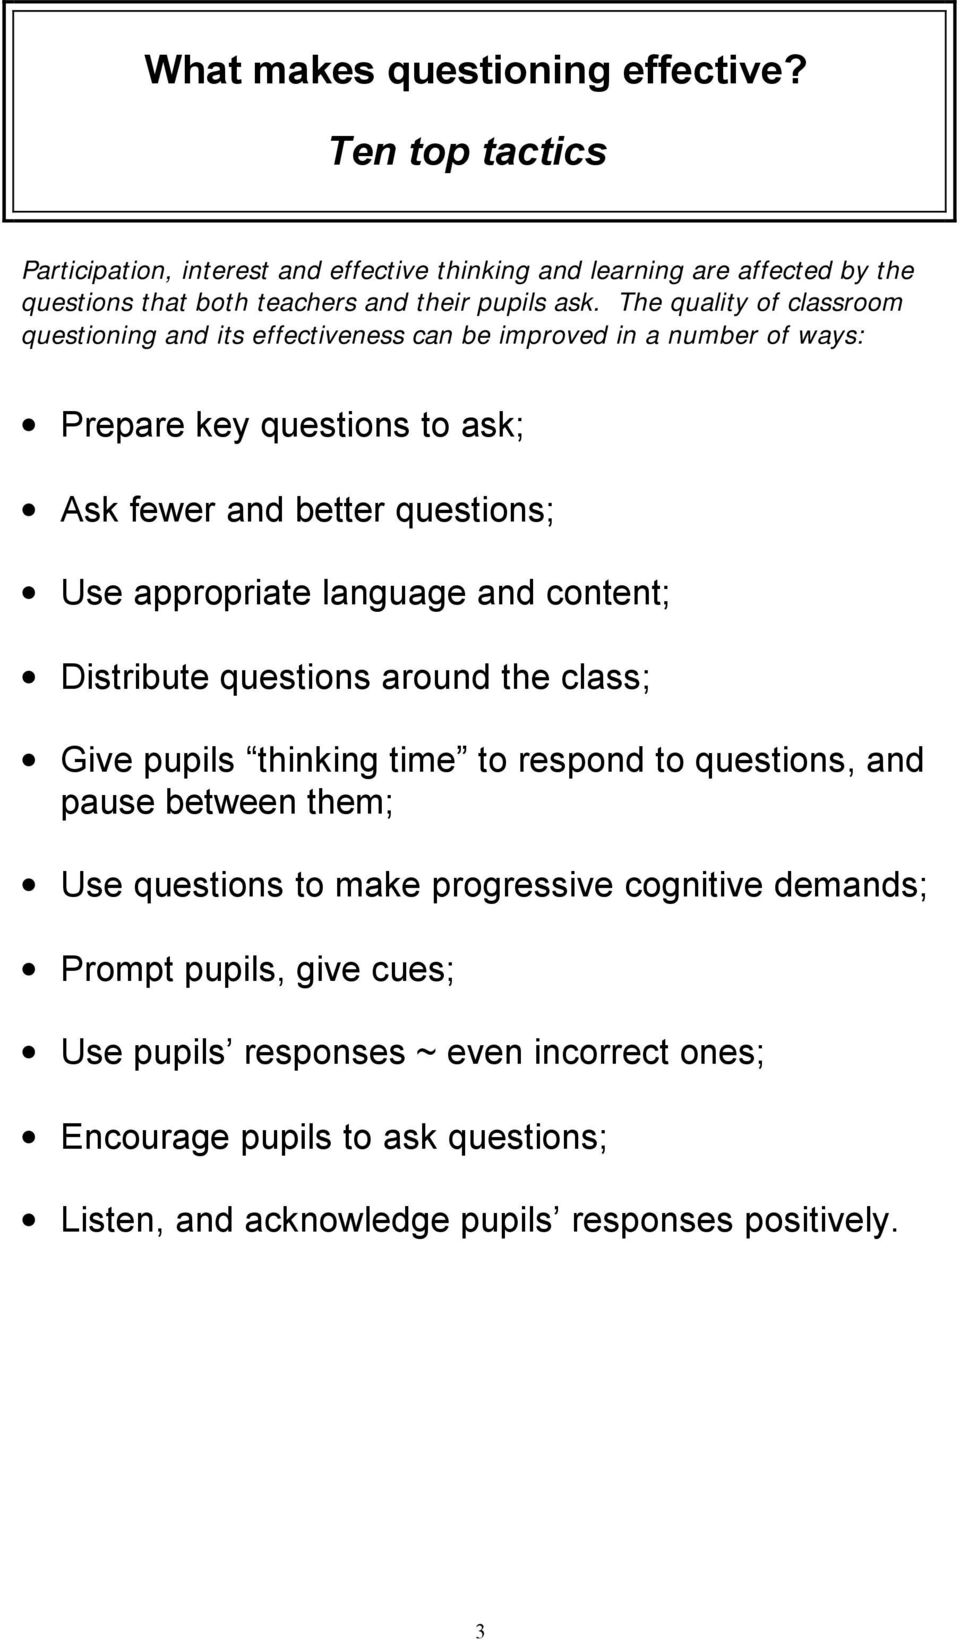 The quality of classroom questioning and its effectiveness can be improved in a number of ways: Prepare key questions to ask; Ask fewer and better questions; Use appropriate